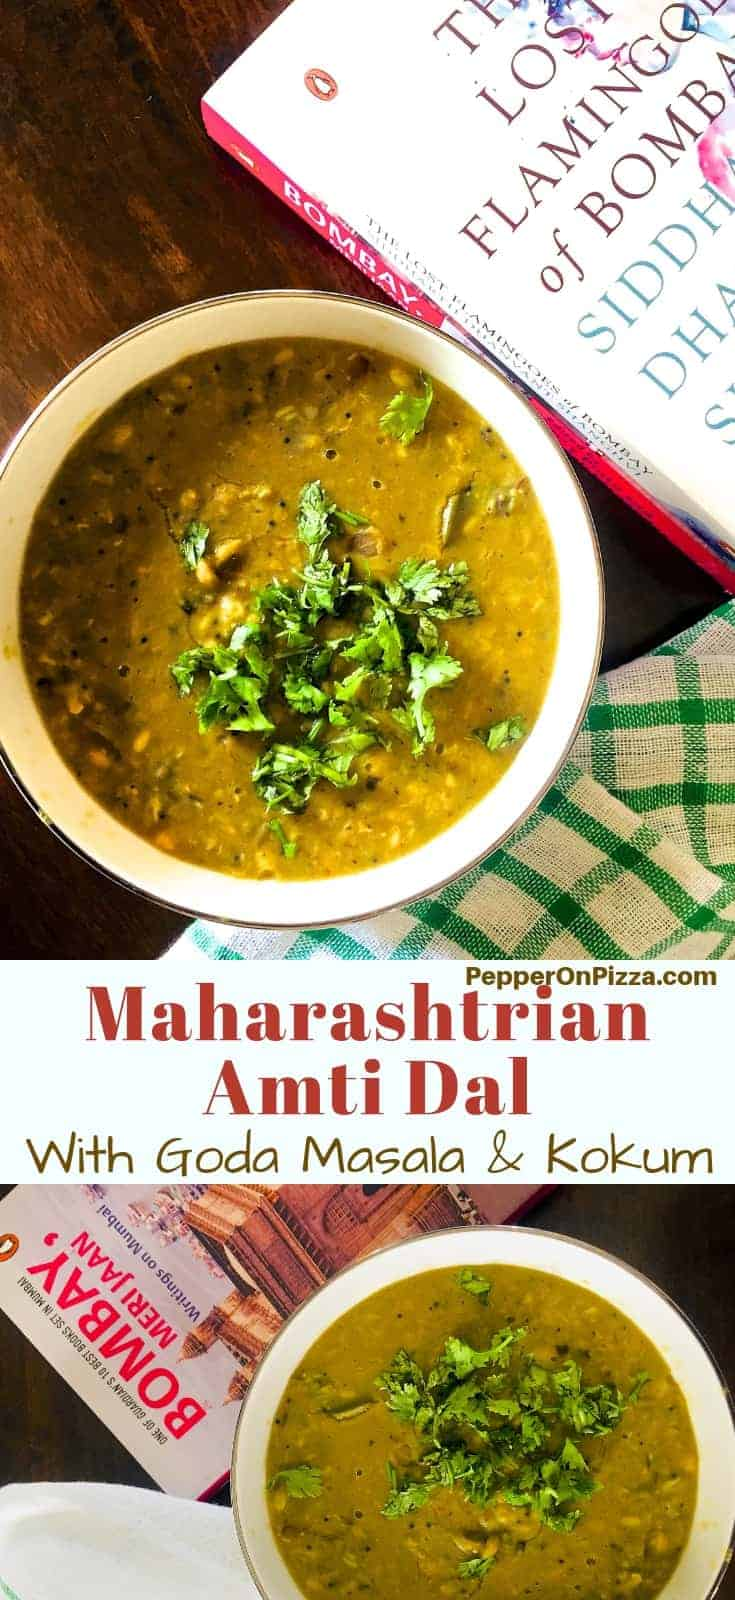 Panchmel or 5 lentil Maharashtrian Amti Dal in a wide bowl, garnished with cilantro, a green checked napkin on one side and a book on Bombay alongside.